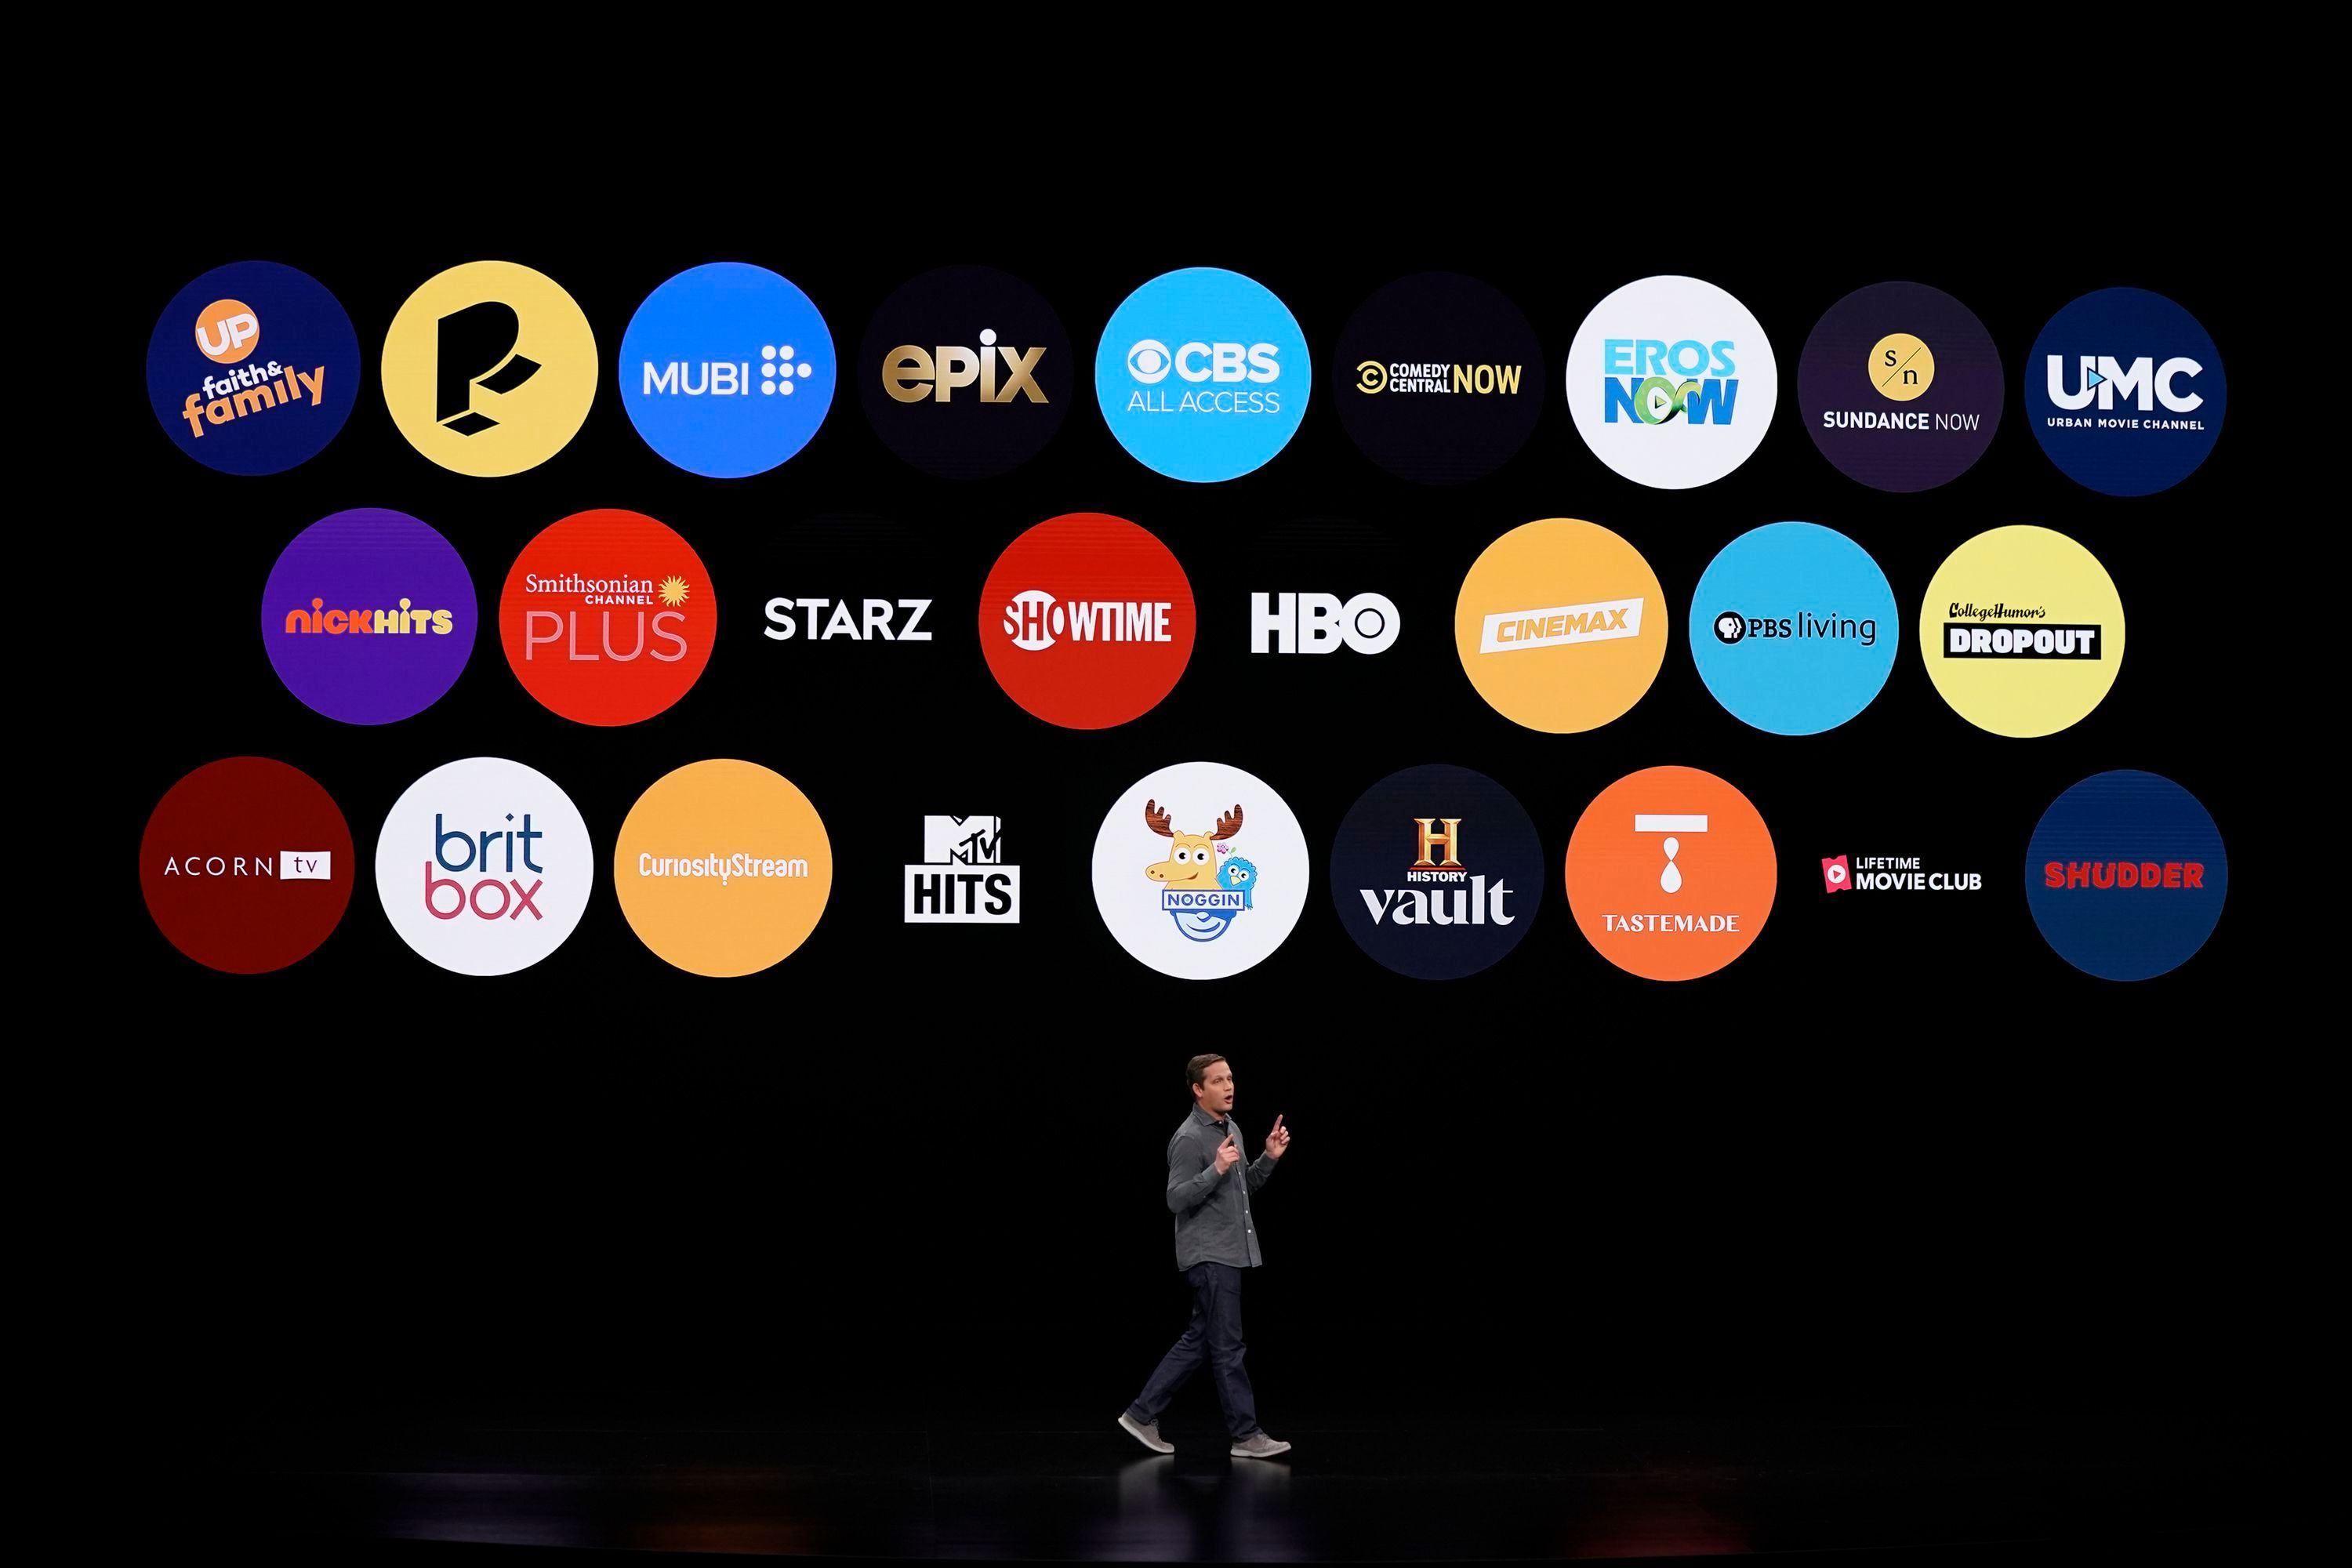 Finding Where To Stream Tv Shows Shouldnt Be Rocket Science Https Ift Tt 2mmrbei Streaming Tv Shows Streaming Tv Streaming